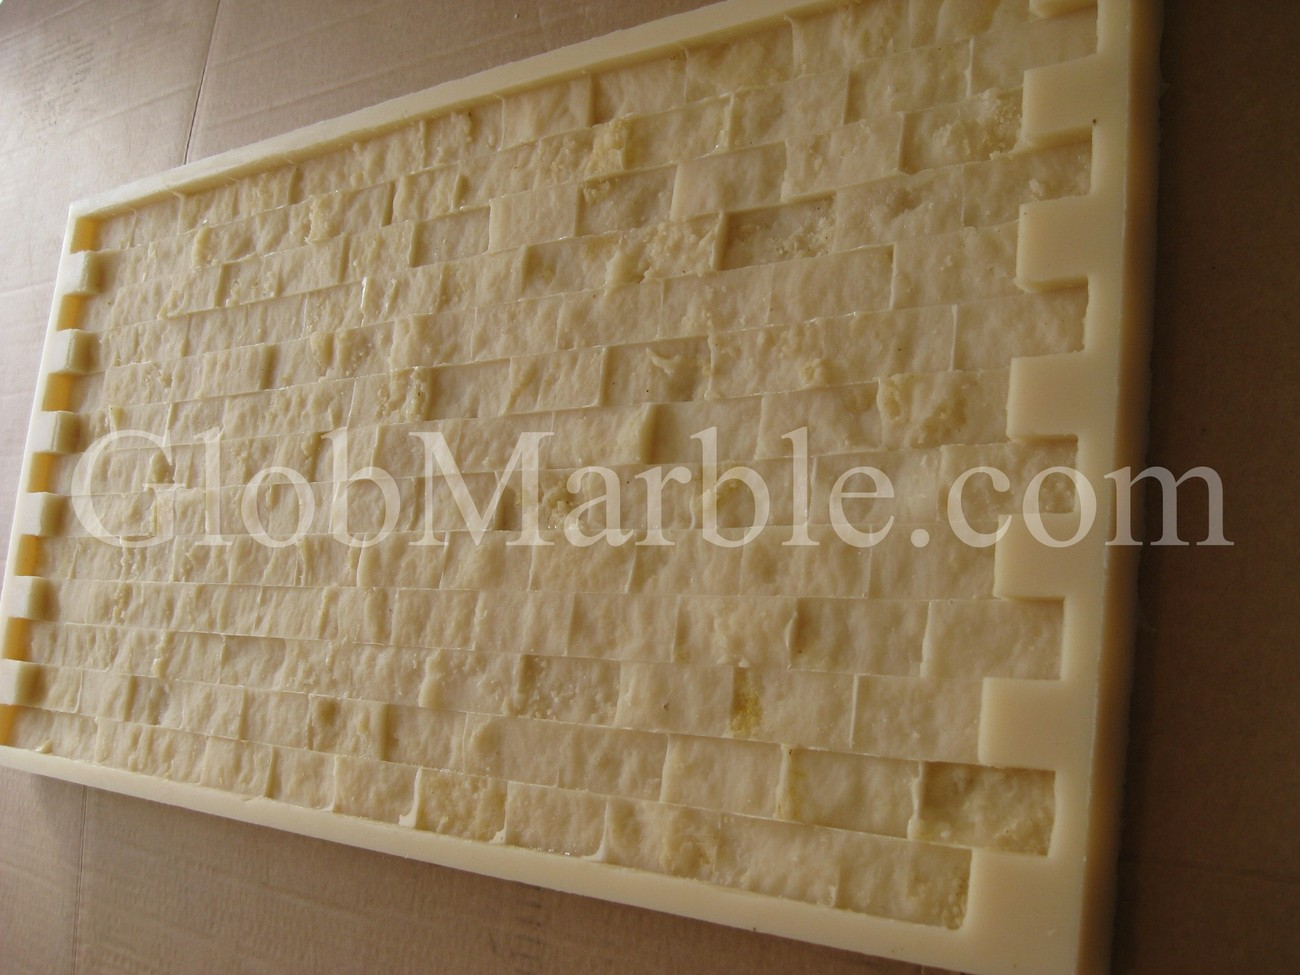 Primary image for MOSAIC STONE RUBBER MOLD. CONCRETE VENEER PAVER.